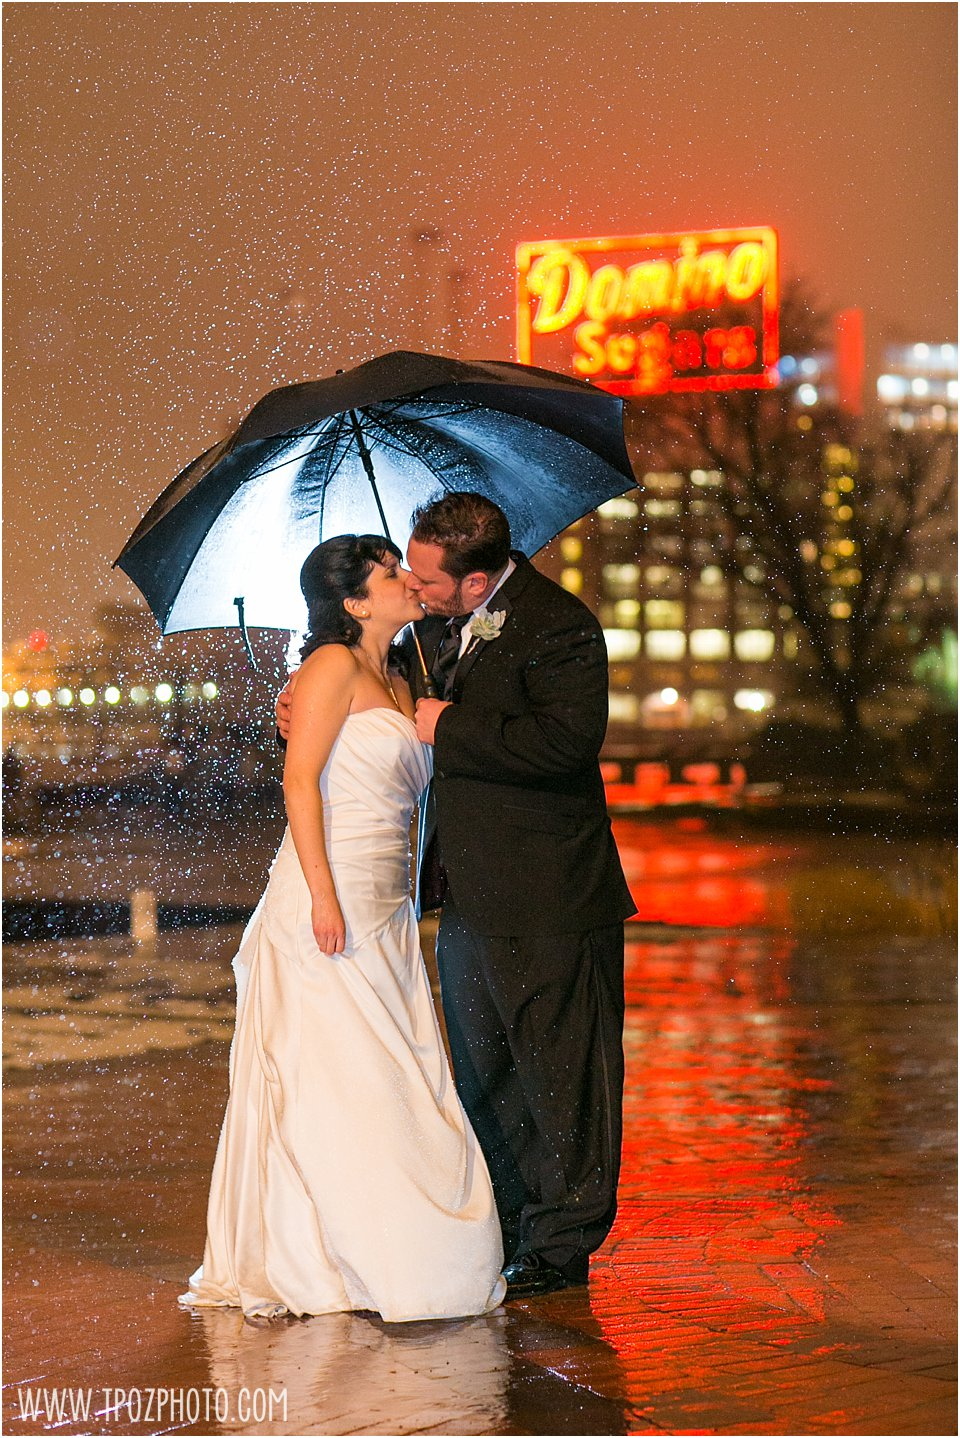 Baltimore Museum of Industry Wedding night rain photo